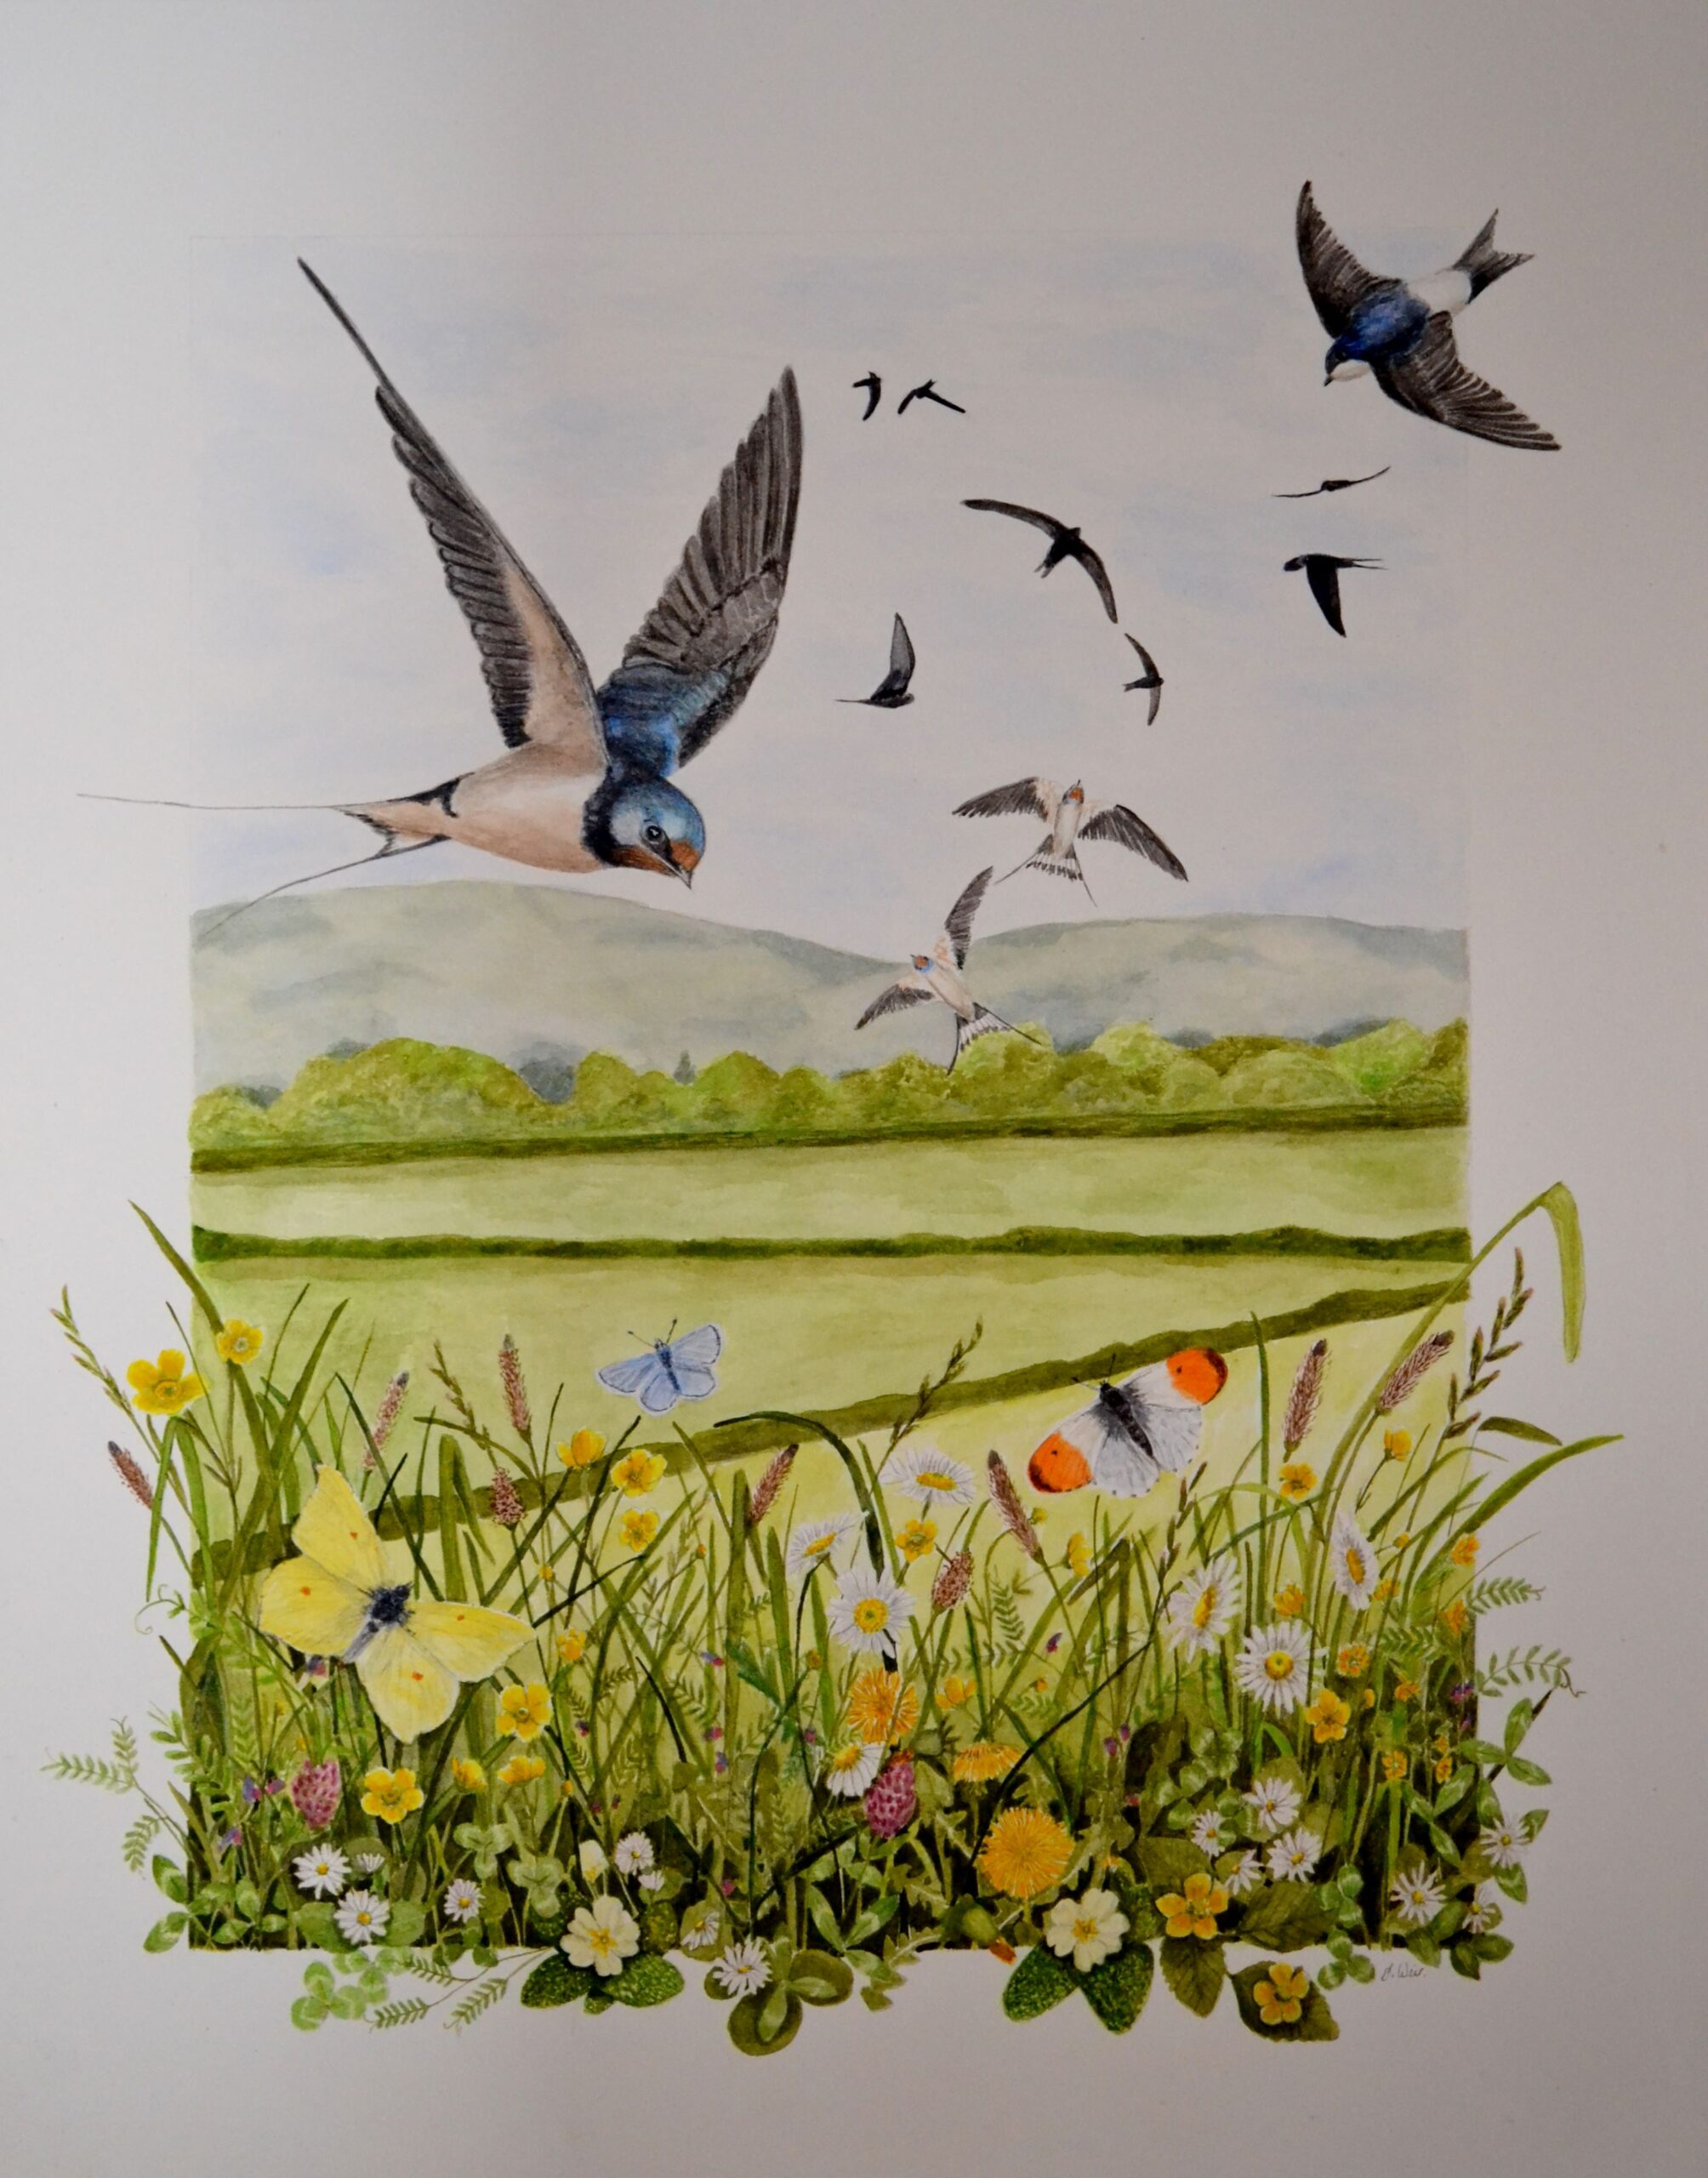 "'Here comes Spring' By Julie Weir - watercolour - £250 (swallows, housemartins & swifts) -16"" x 20"""